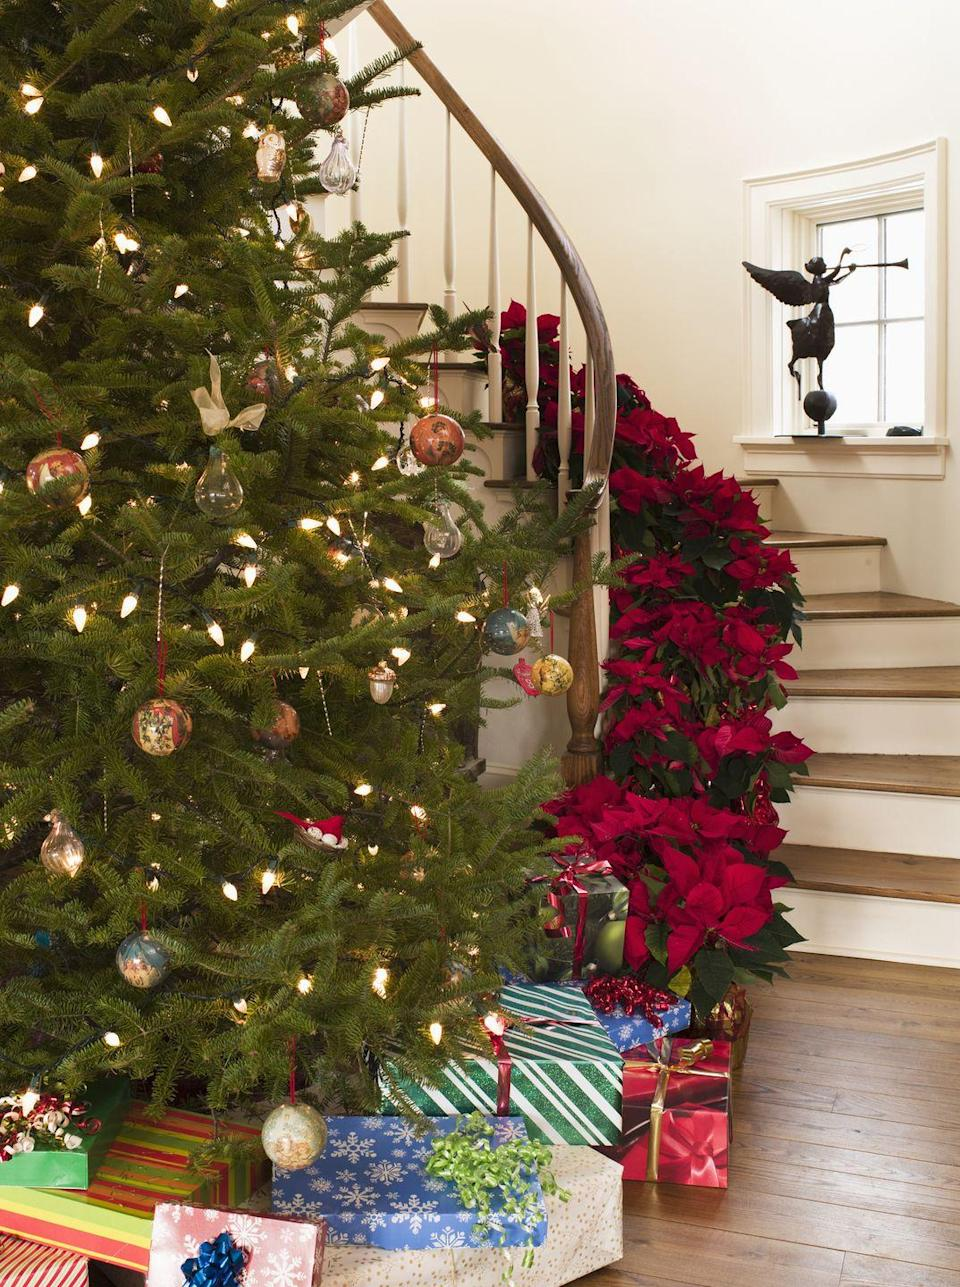 """<p>Go big with poinsettias this year. Instead of flanking your hearth, line your staircase with about a dozen ruby red plants. </p><p><a class=""""link rapid-noclick-resp"""" href=""""https://www.amazon.com/Sympathy-Silks-Poinsettias-Artificial-Weighted/dp/B01M1YA12N?tag=syn-yahoo-20&ascsubtag=%5Bartid%7C10072.g.34479907%5Bsrc%7Cyahoo-us"""" rel=""""nofollow noopener"""" target=""""_blank"""" data-ylk=""""slk:SHOP FAUX POINSETTIAS"""">SHOP FAUX POINSETTIAS</a></p>"""